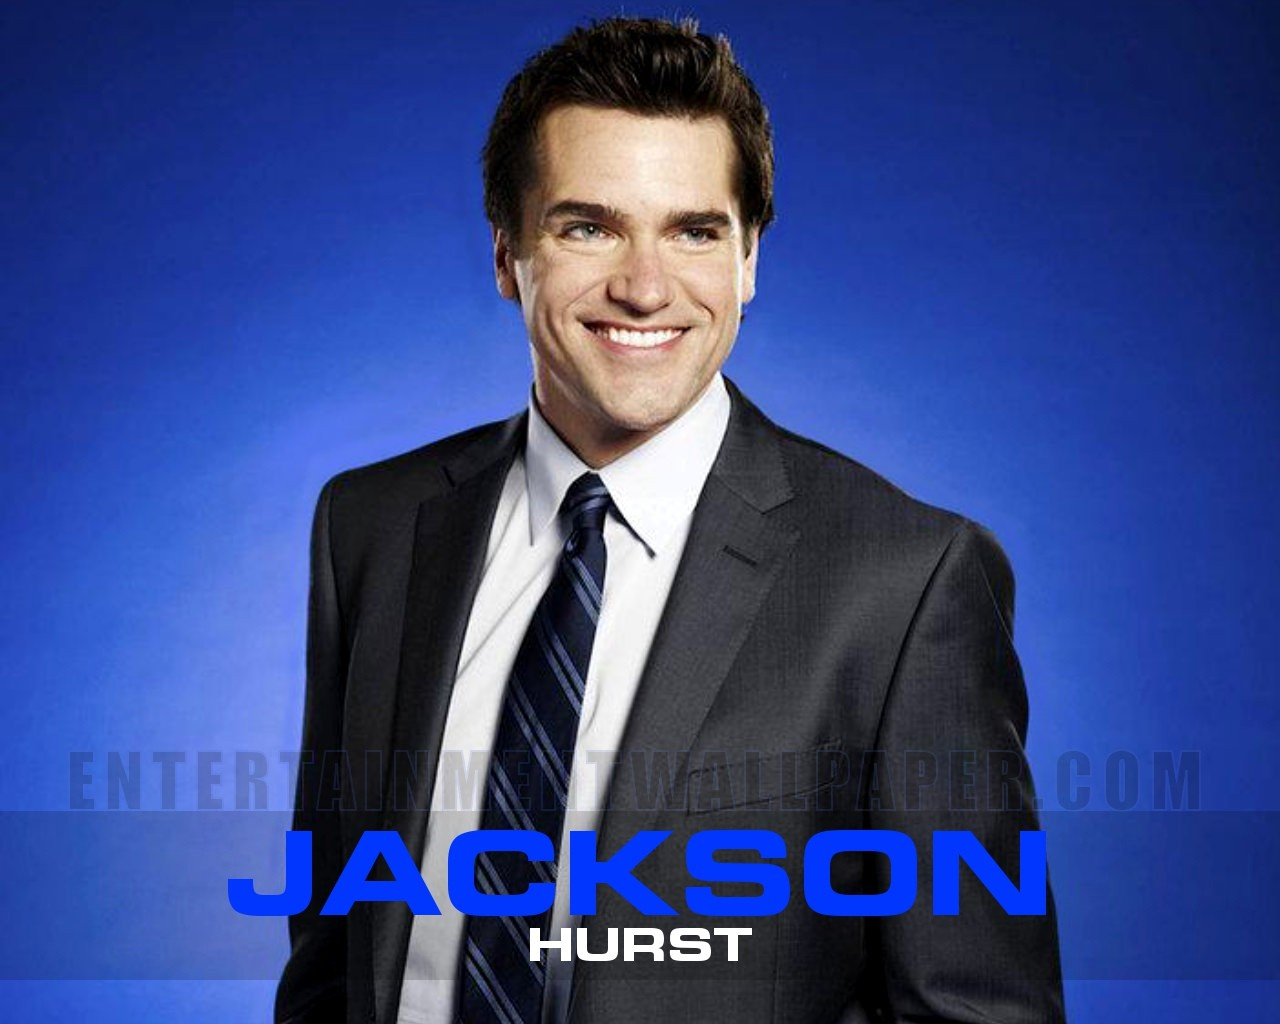 jackson hurst gayjackson hurst twitter, jackson hurst, jackson hurst stacy stas, jackson hurst wikipedia, jackson hurst instagram, jackson hurst wife, jackson hurst drop dead diva, jackson hurst grey's anatomy, jackson hurst married, jackson hurst imdb, jackson hurst net worth, jackson hurst shirtless, jackson hurst height, jackson hurst interview, jackson hurst gay, jackson hurst biografia, jackson hurst partners llc, jackson hurst bulge, jackson hurst girlfriend